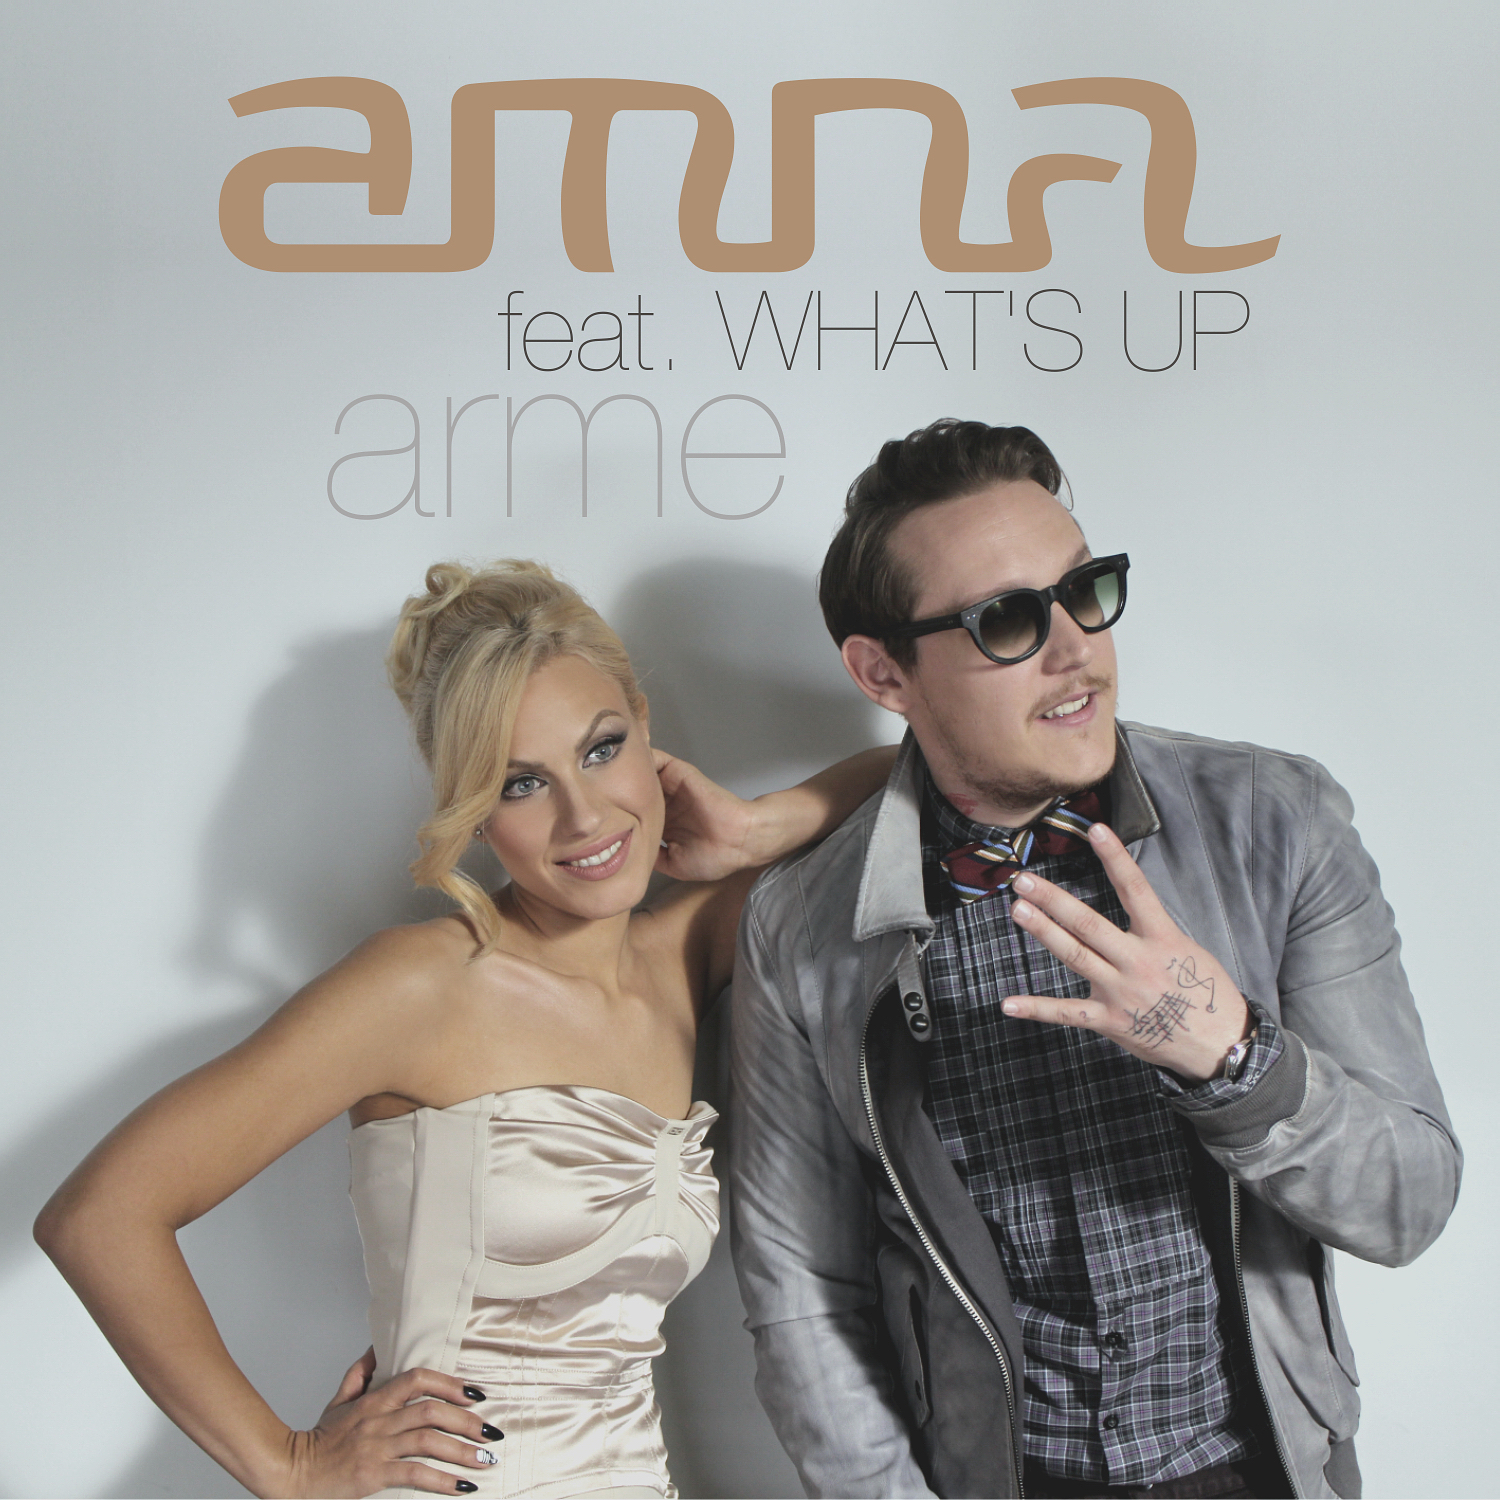 Amna feat What's Up - Arme (Official Video HD)